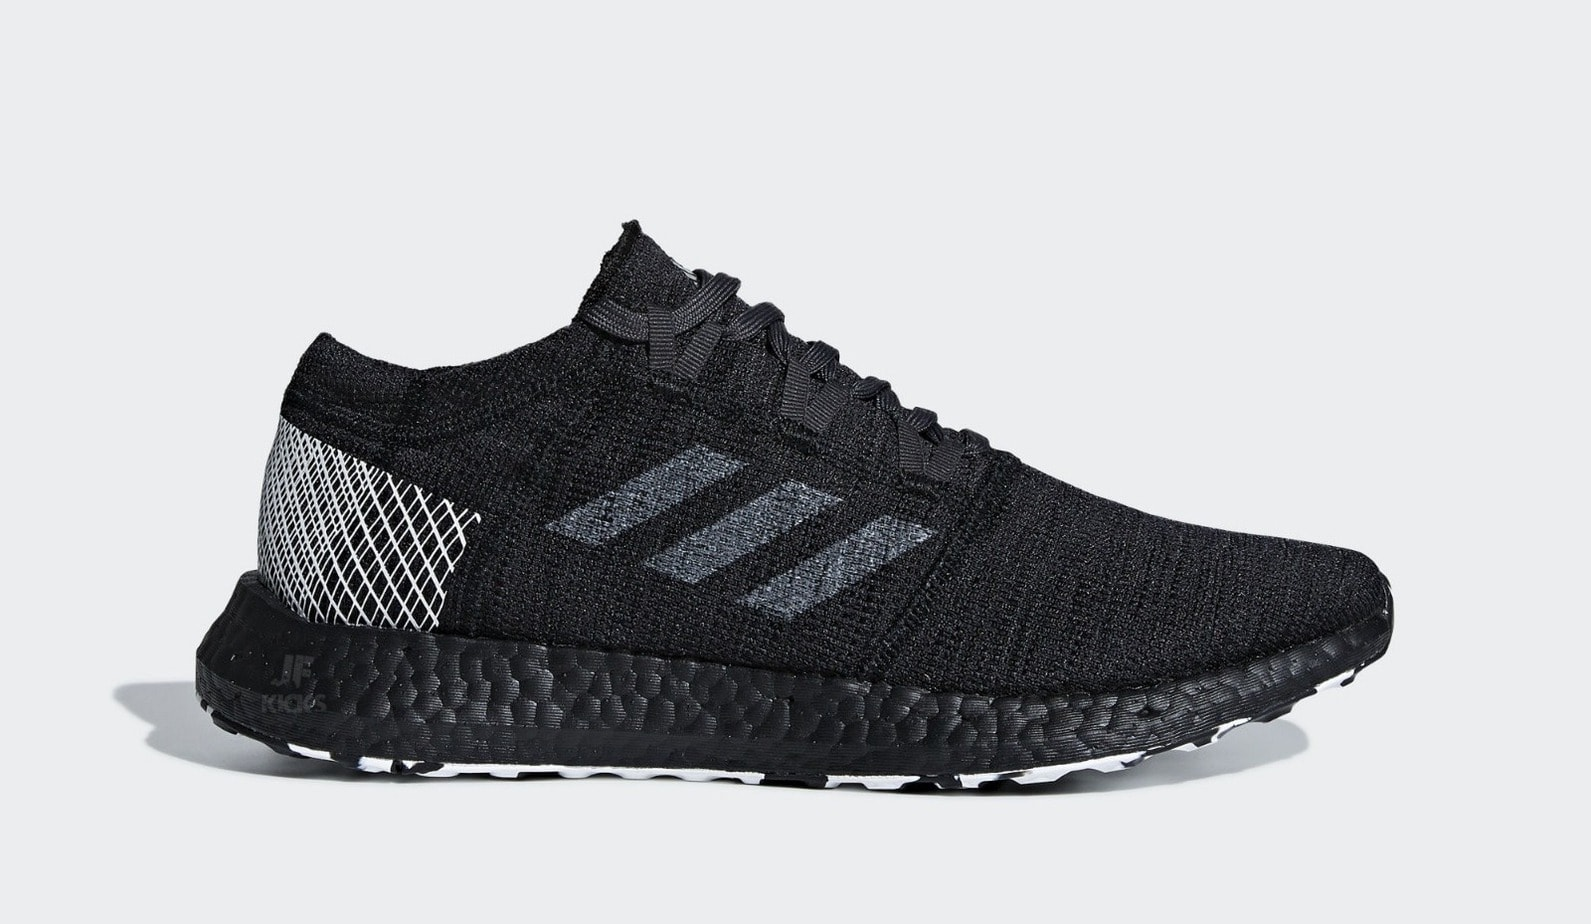 The adidas Pure Boost first burst onto the scene in 2015 as a lightweight 4afad4064